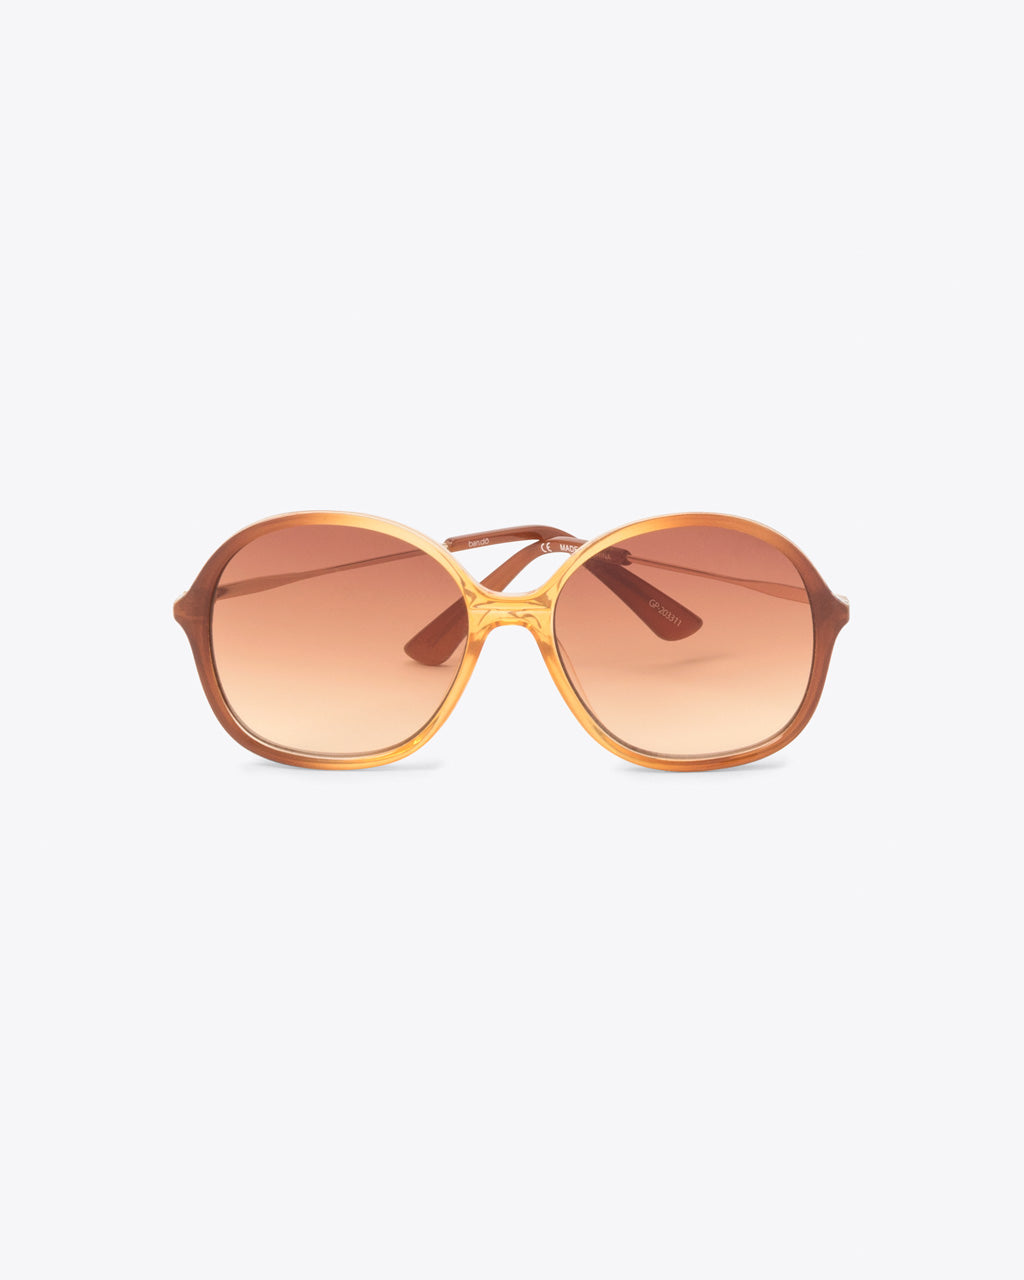 oversized vintage inspired sunglasses with amber lenses